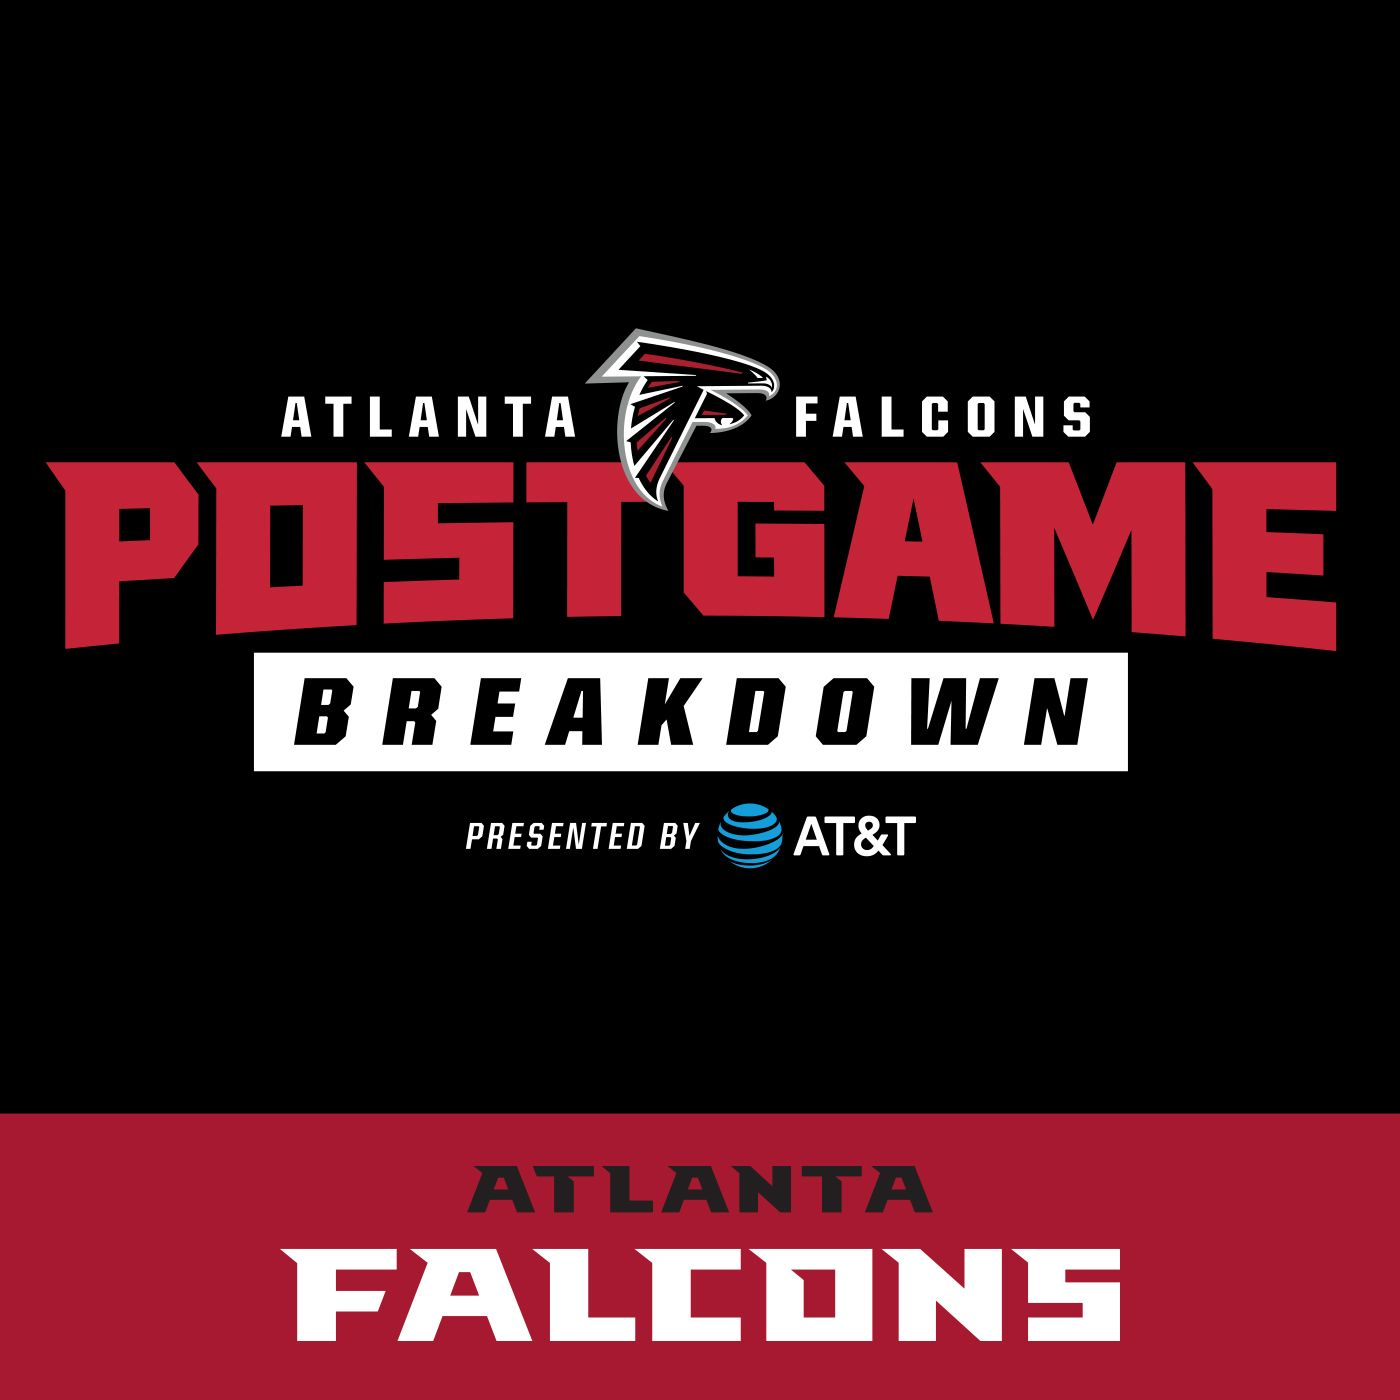 Atlanta Falcons Postgame Breakdown presented by AT&T